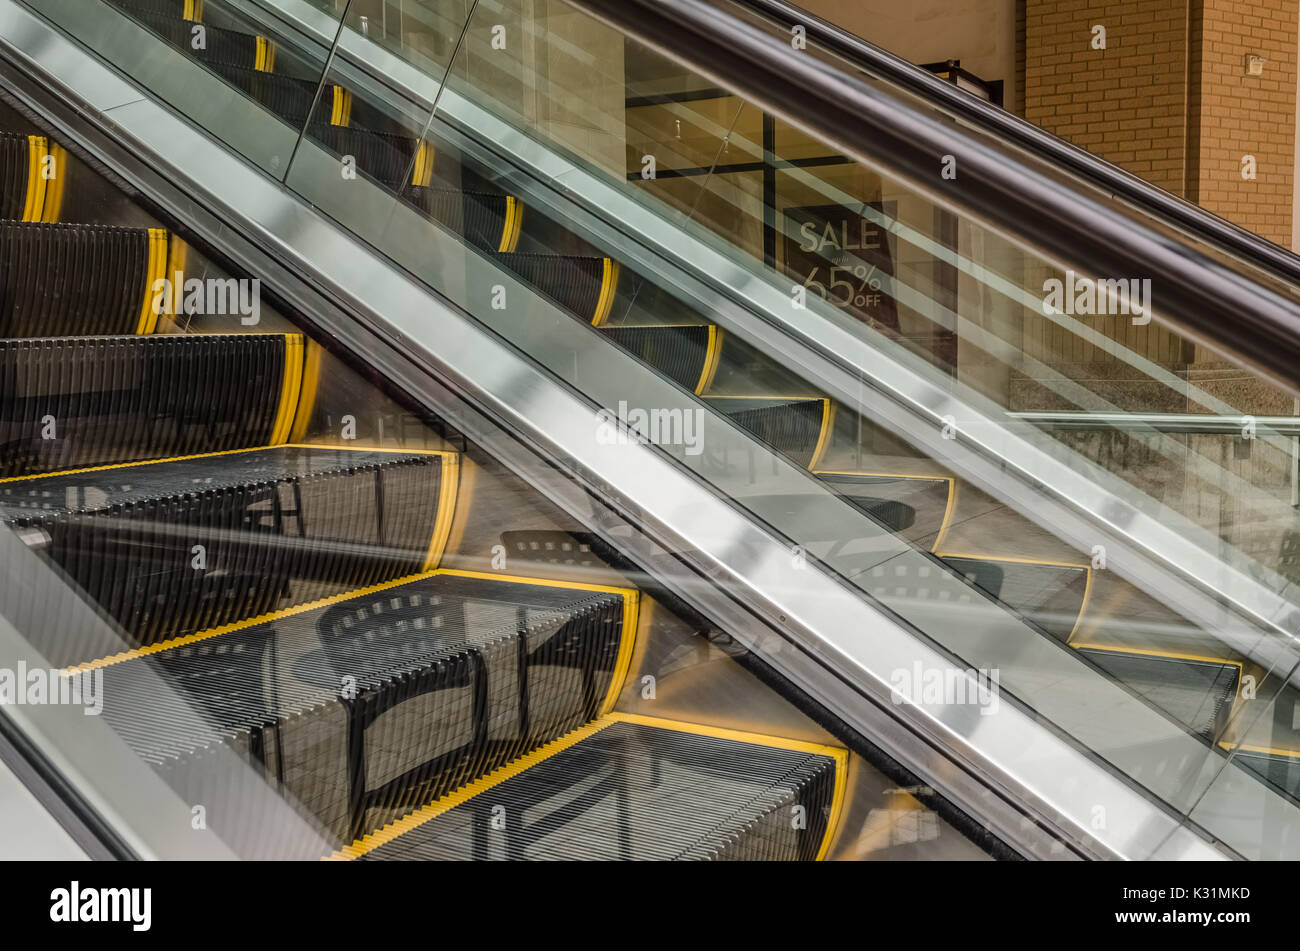 Reflections create an interesting abstract of outdoor escalators - Stock Image